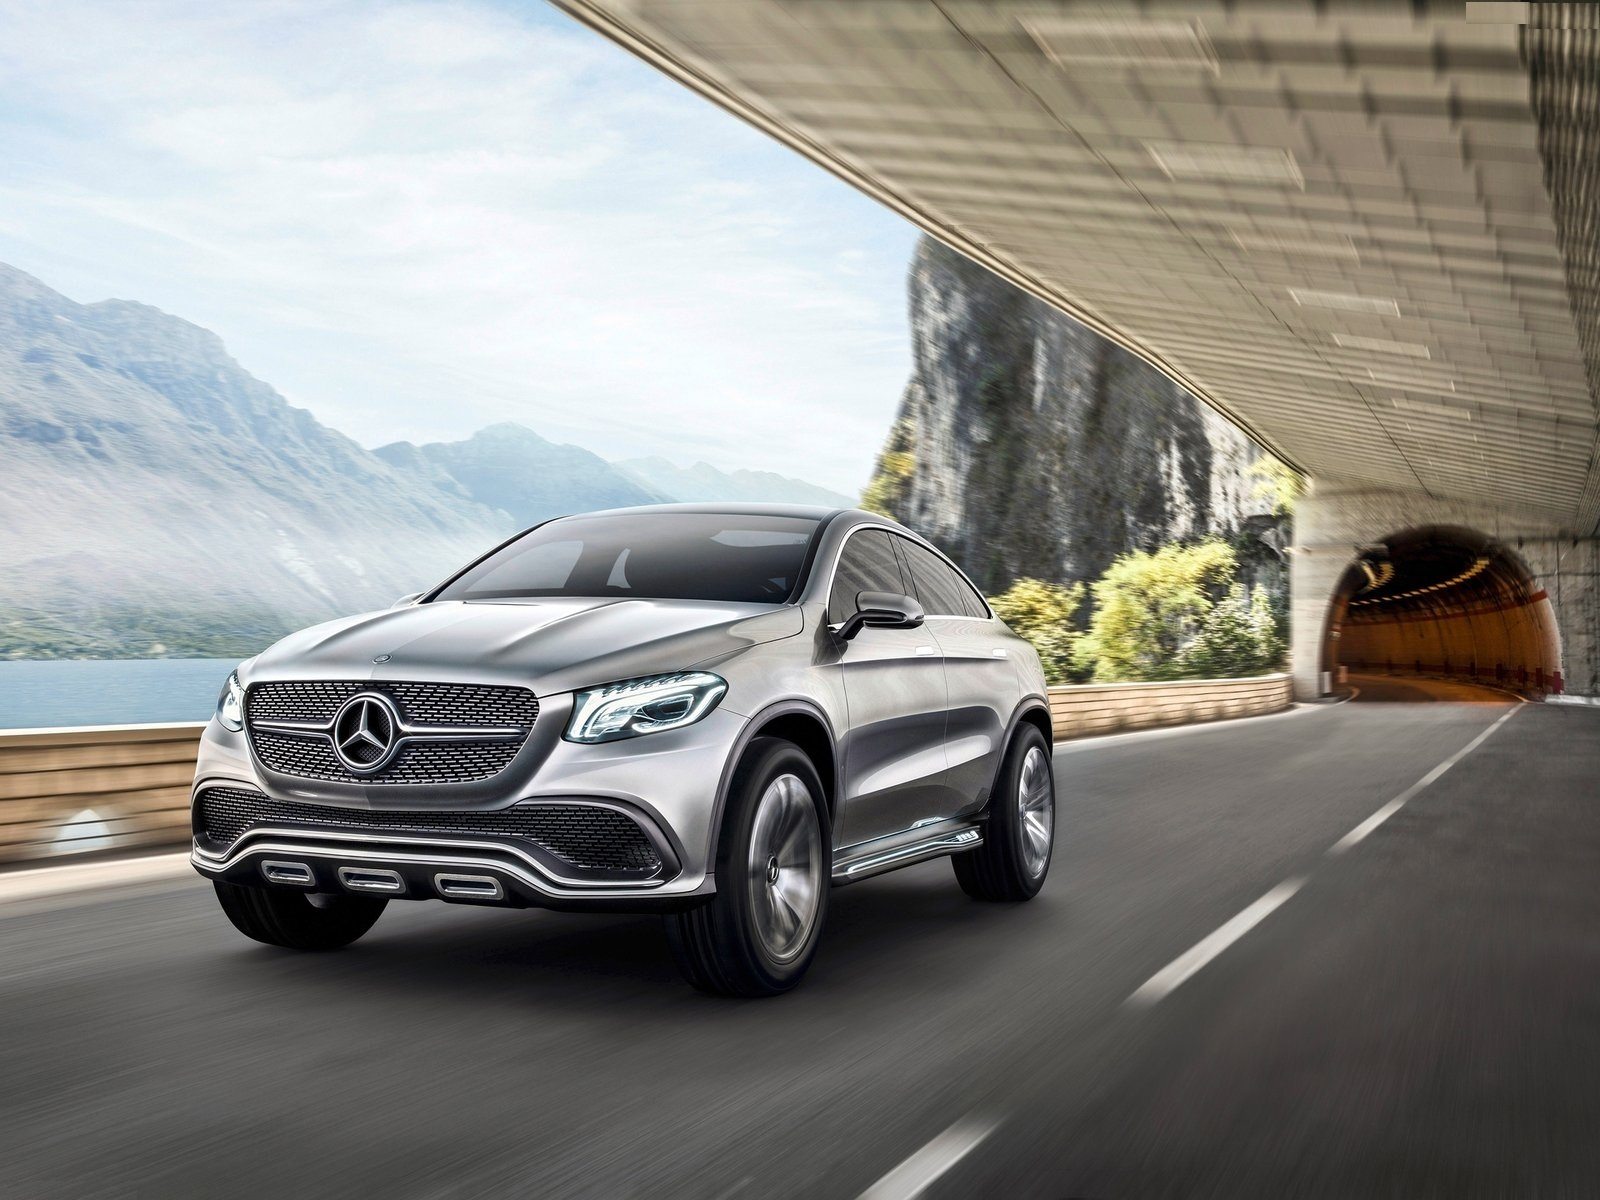 Mercedes Benz Coupe SUV Theme